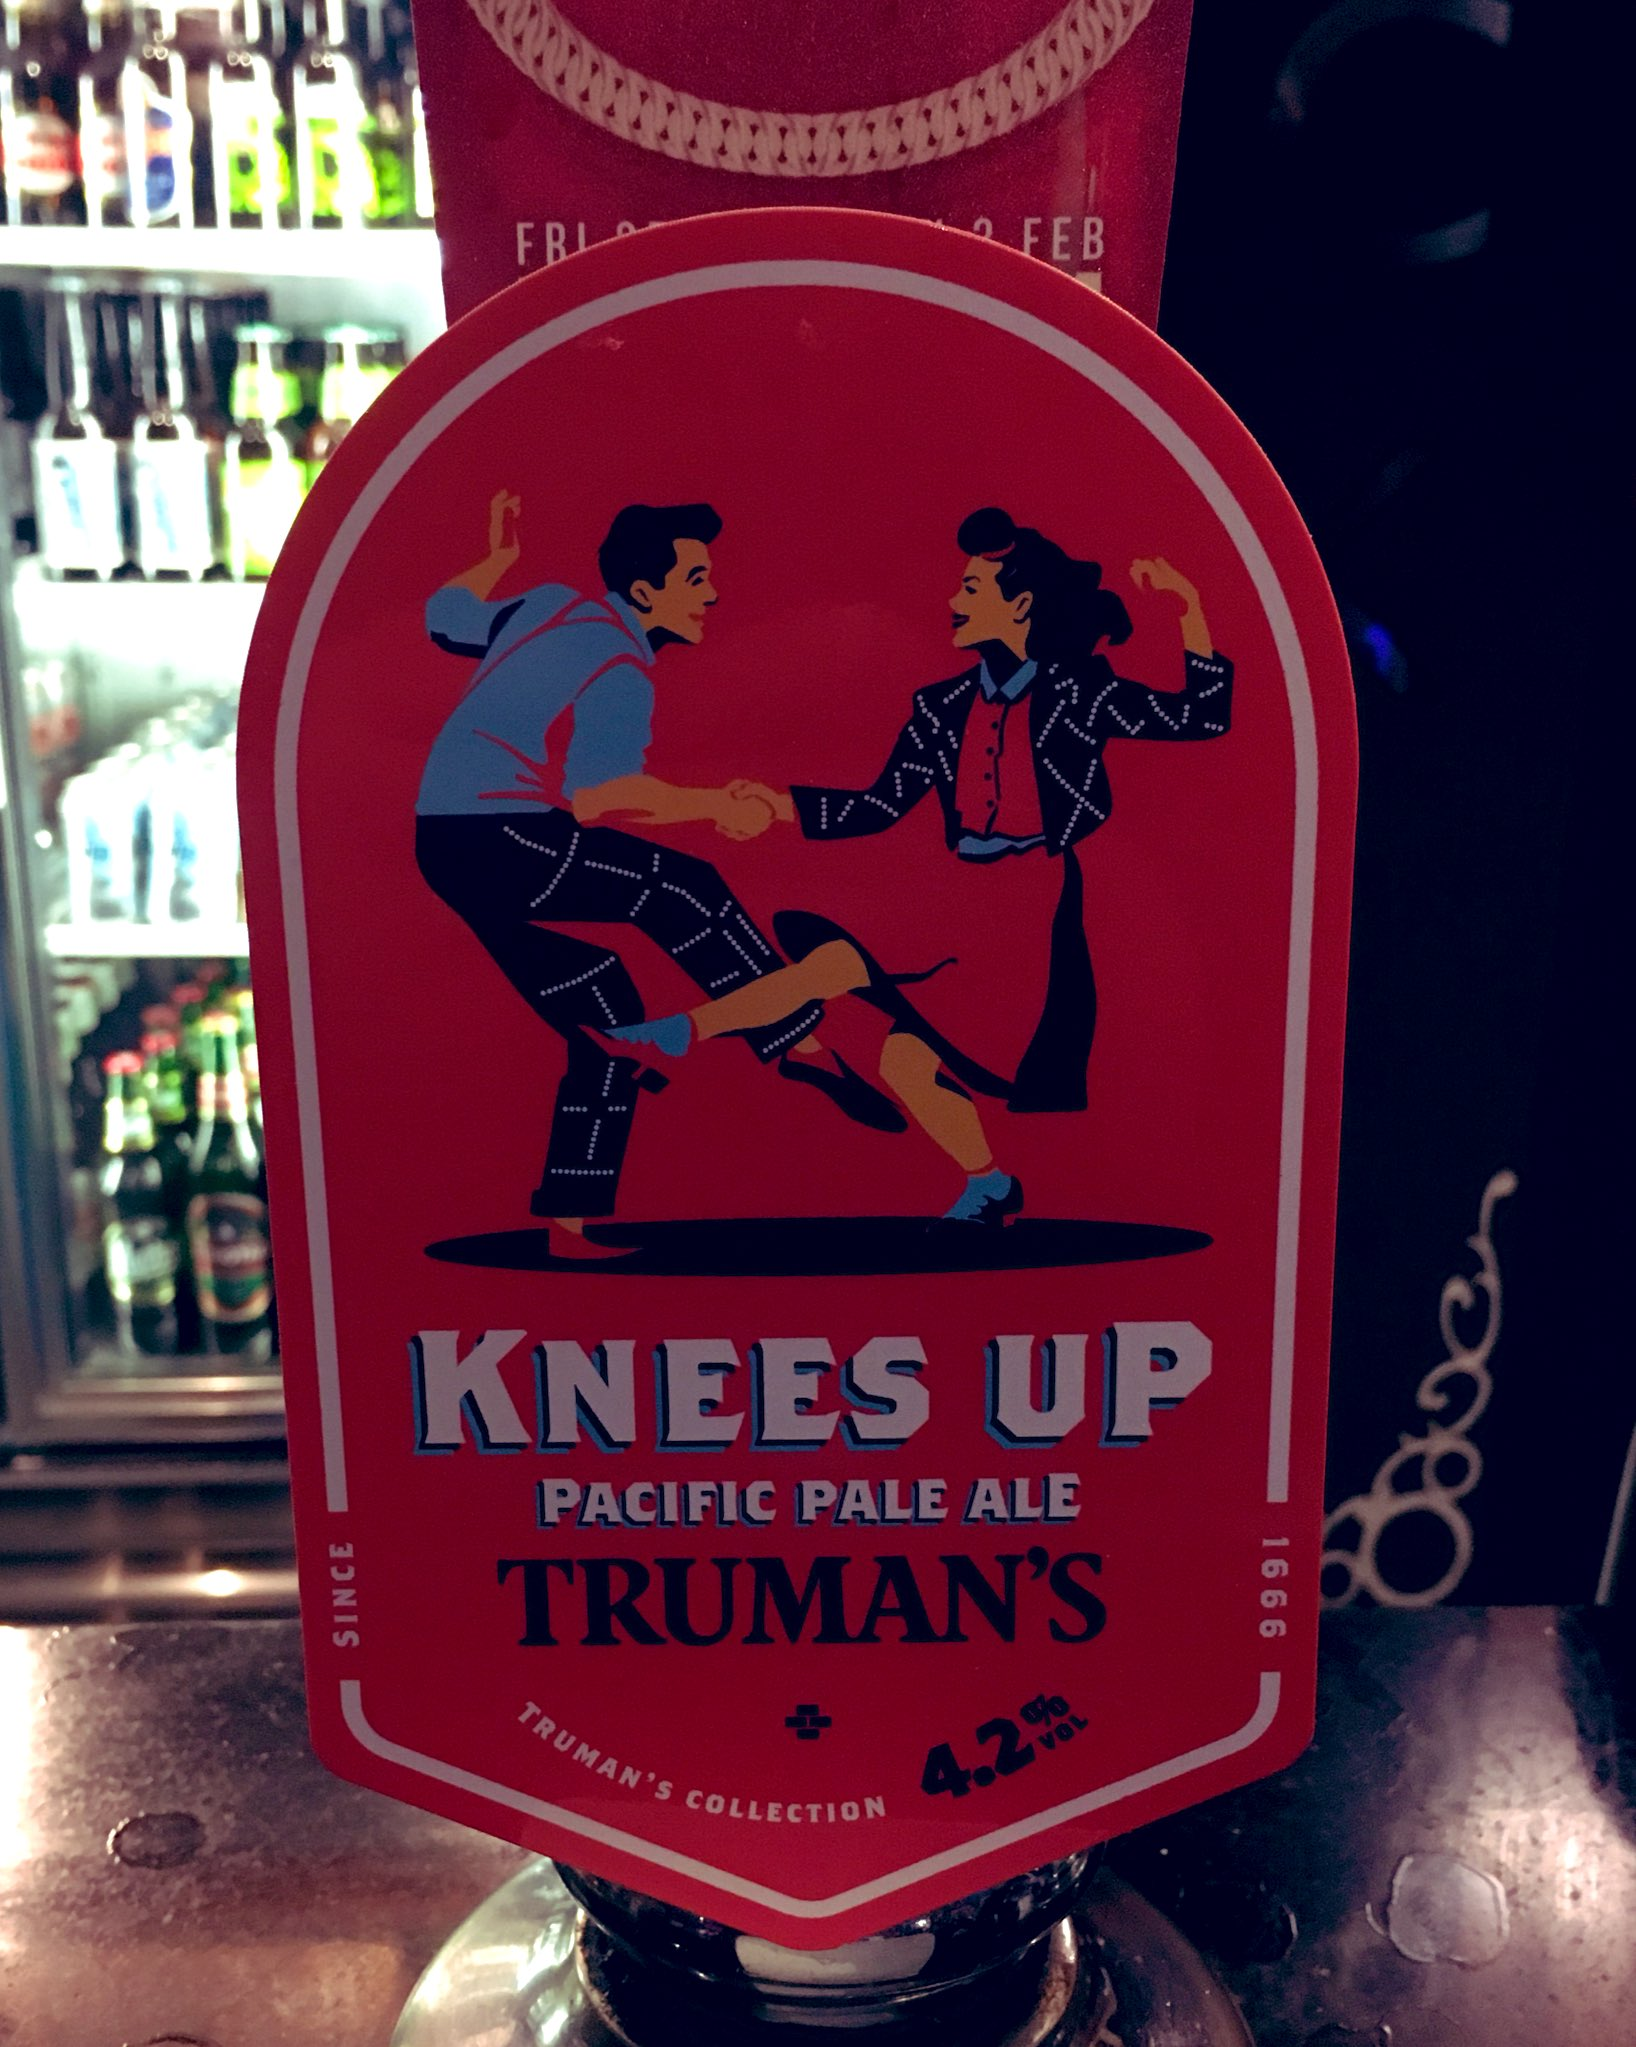 60: Knees Up